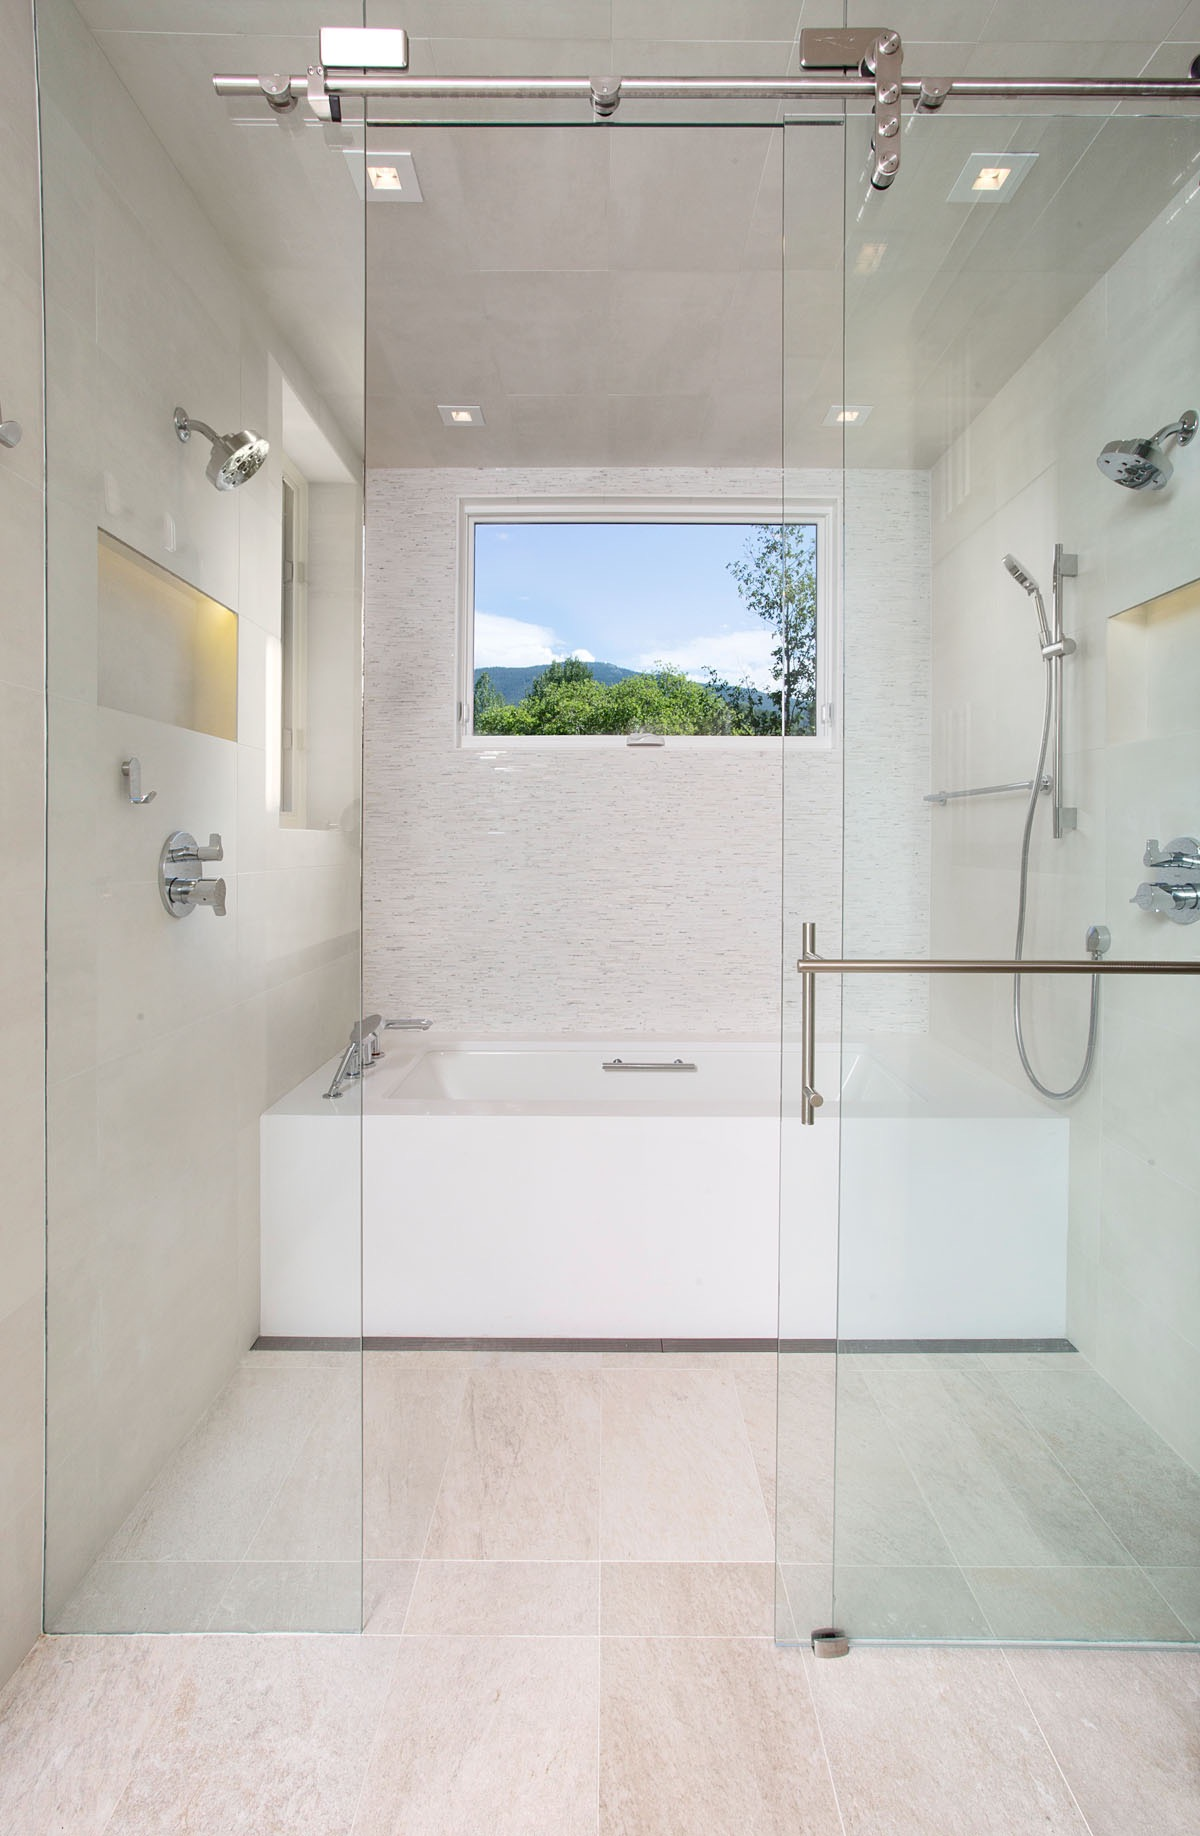 Minimalist Modern Bathroom With Shower And Soaking Tub (Image 13 of 19)